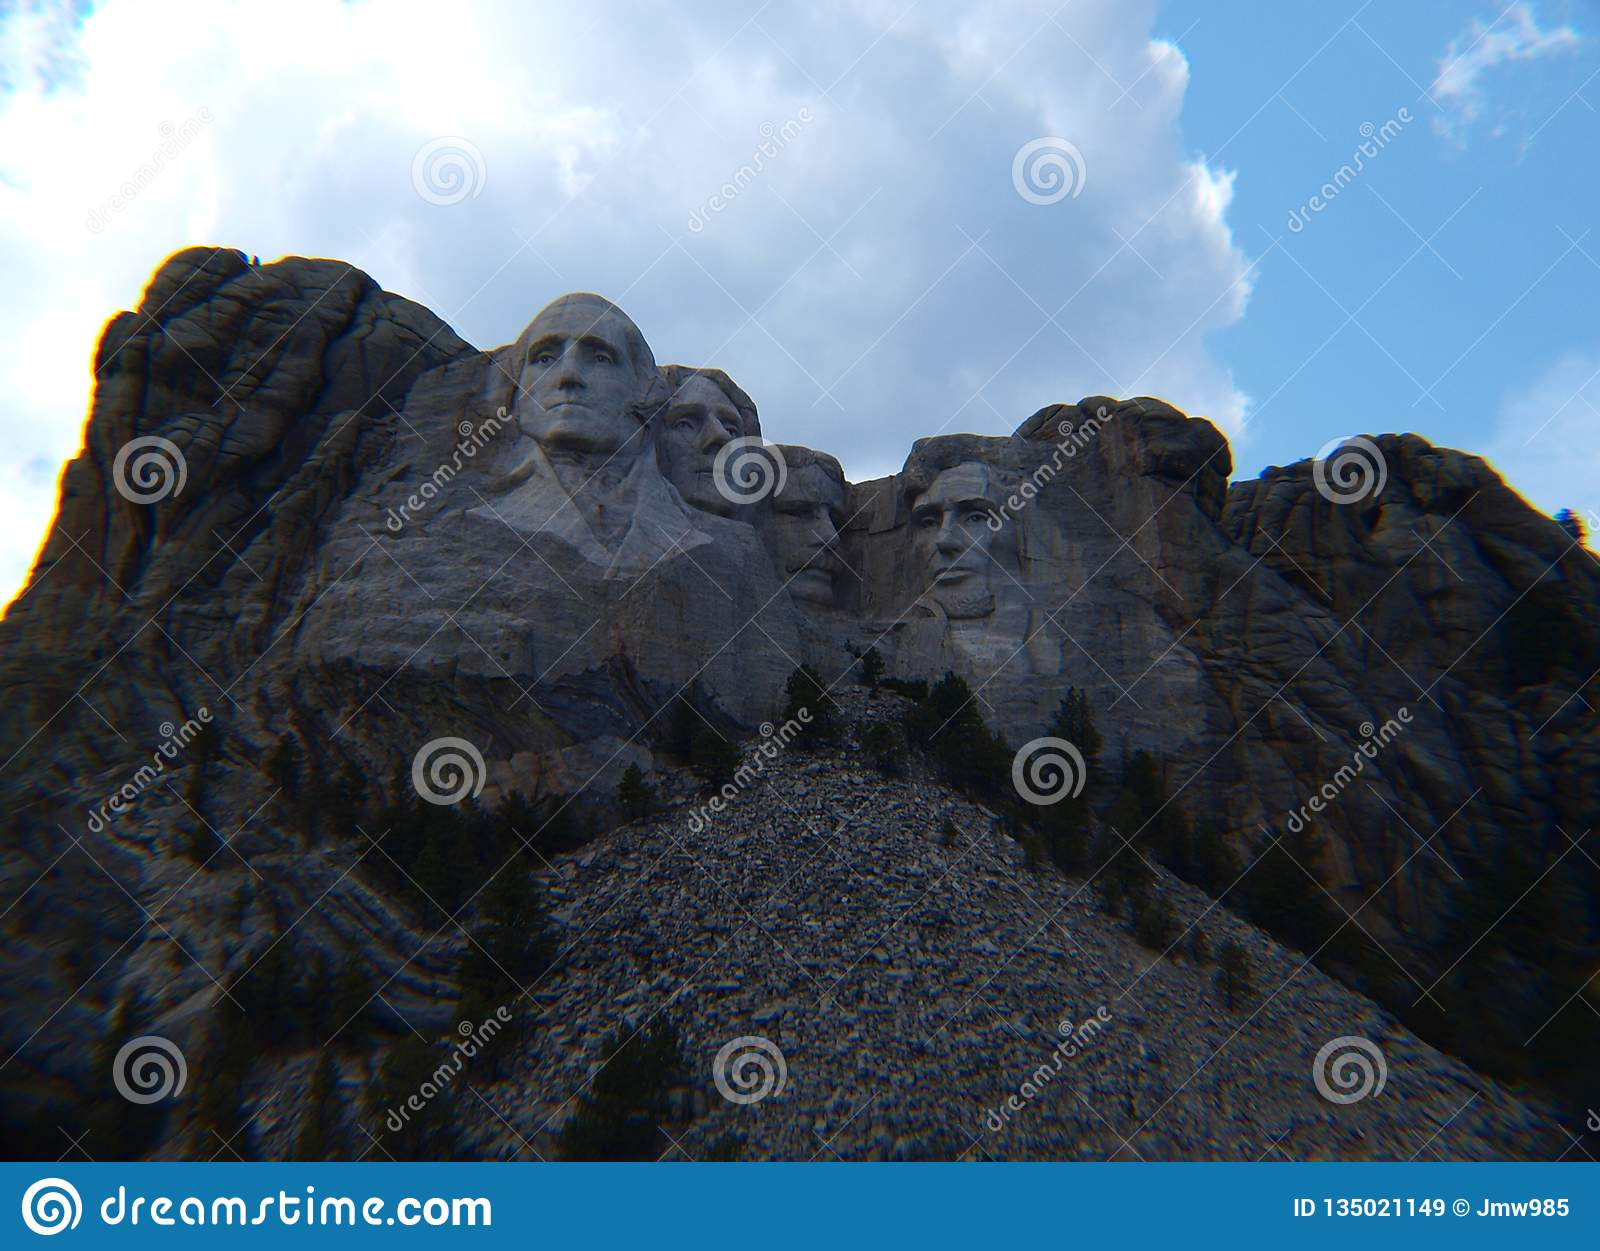 Mount Rushmore in all its magnificence